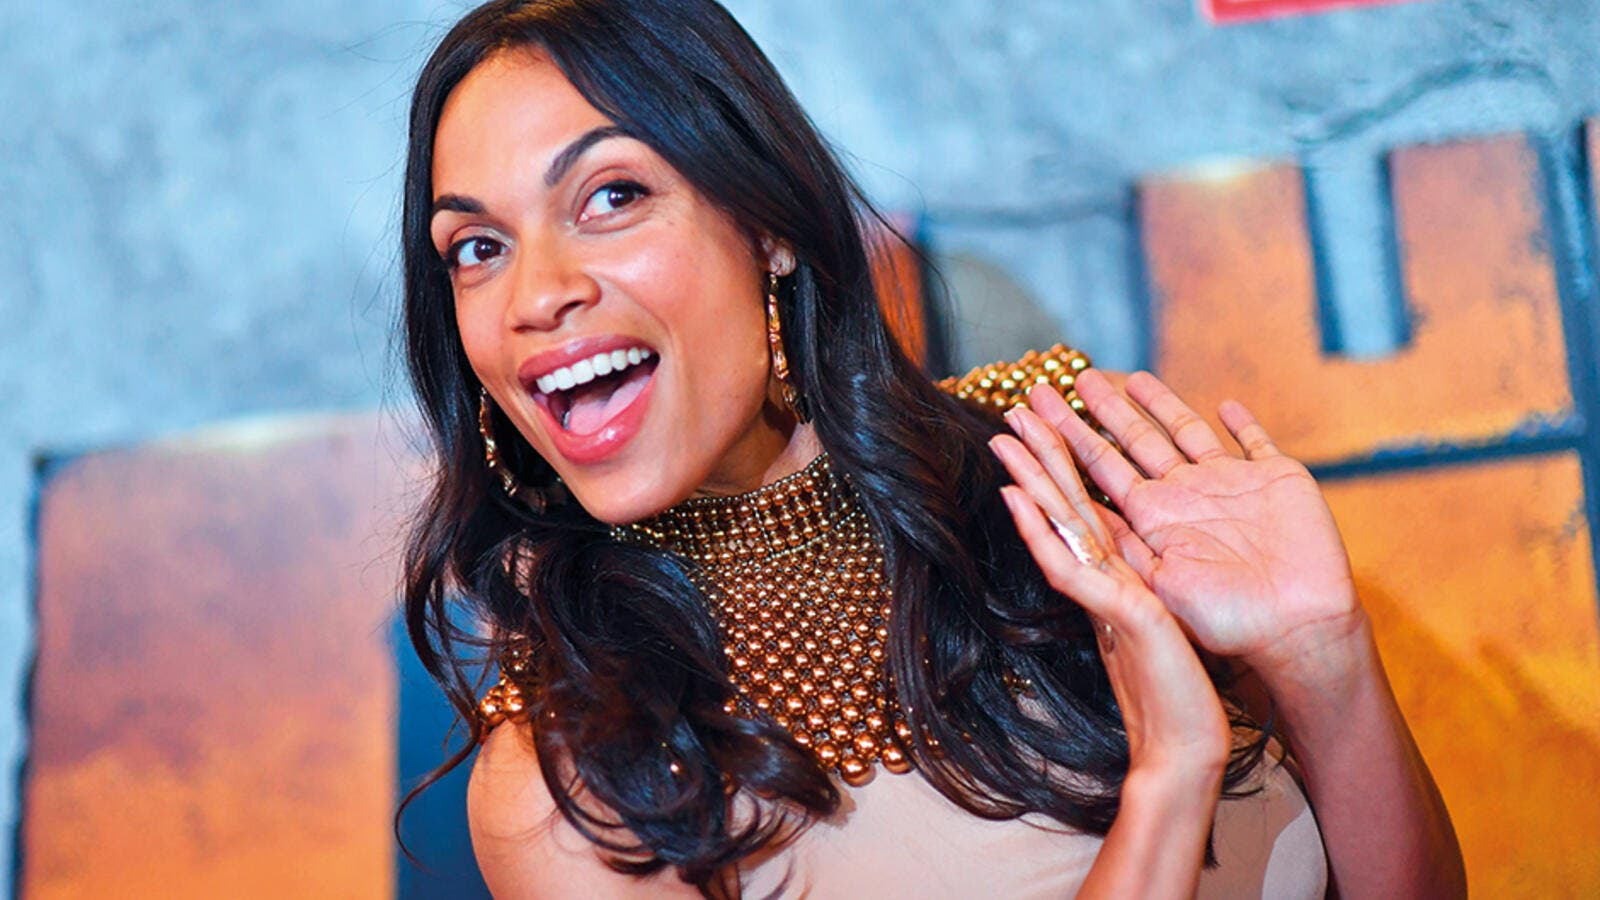 Rosario Dawson attends the Netflix Original Series Marvel's Luke Cage Season 2 New York City Premiere. *(AFP/File)